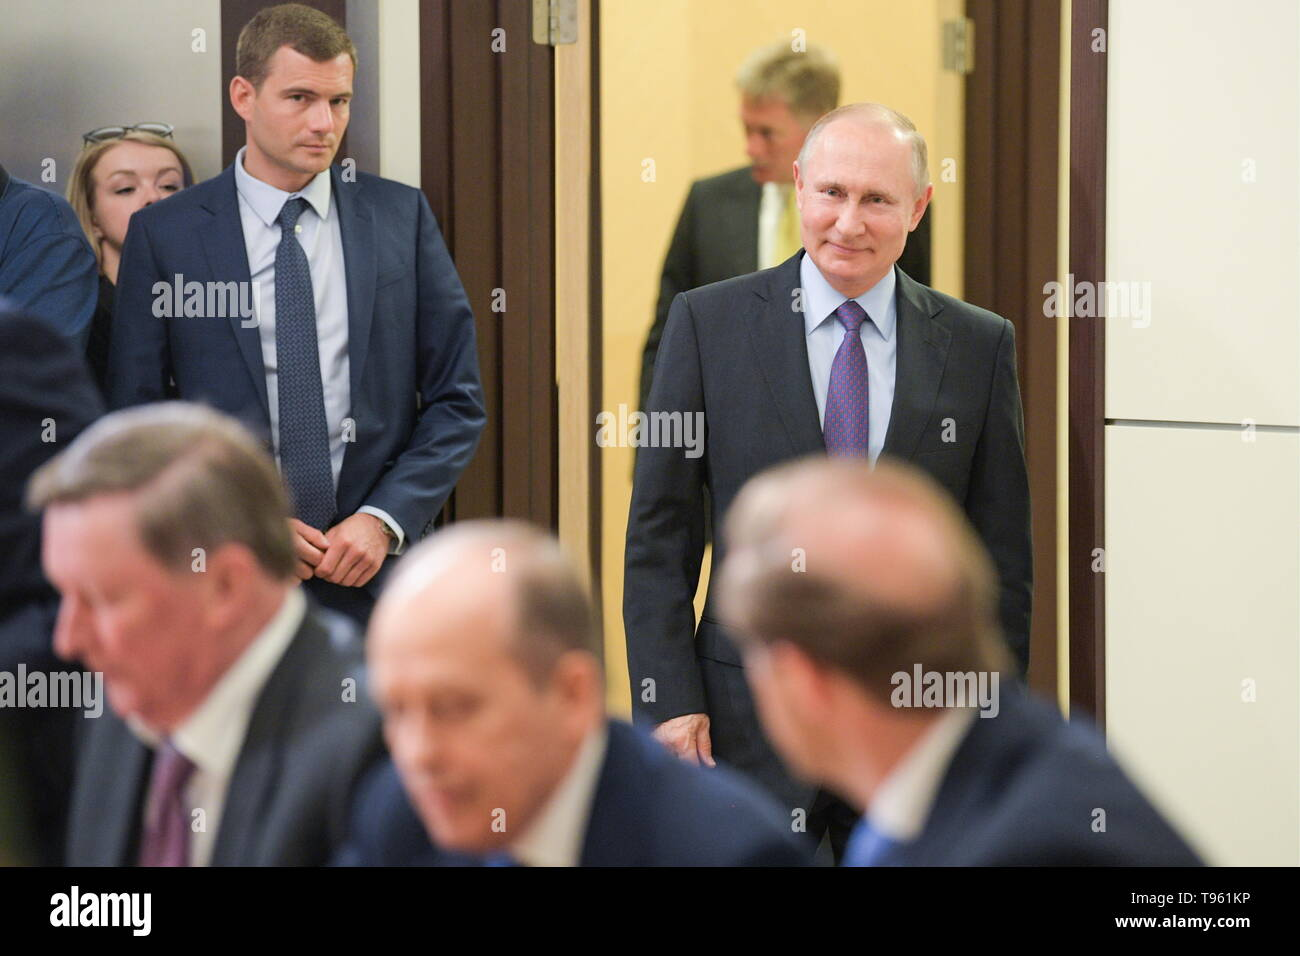 Sochi, Russia. 17th May, 2019. SOCHI, RUSSIA - MAY 17, 2019: Russia's President Vladimir Putin (R back) ahead of a meeting at Bocharov Ruchei residence to discuss development prospects for the Russian Aerospace Forces. Alexei Druzhinin/Russian Presidential Press and Information Office/TASS Credit: ITAR-TASS News Agency/Alamy Live News - Stock Image